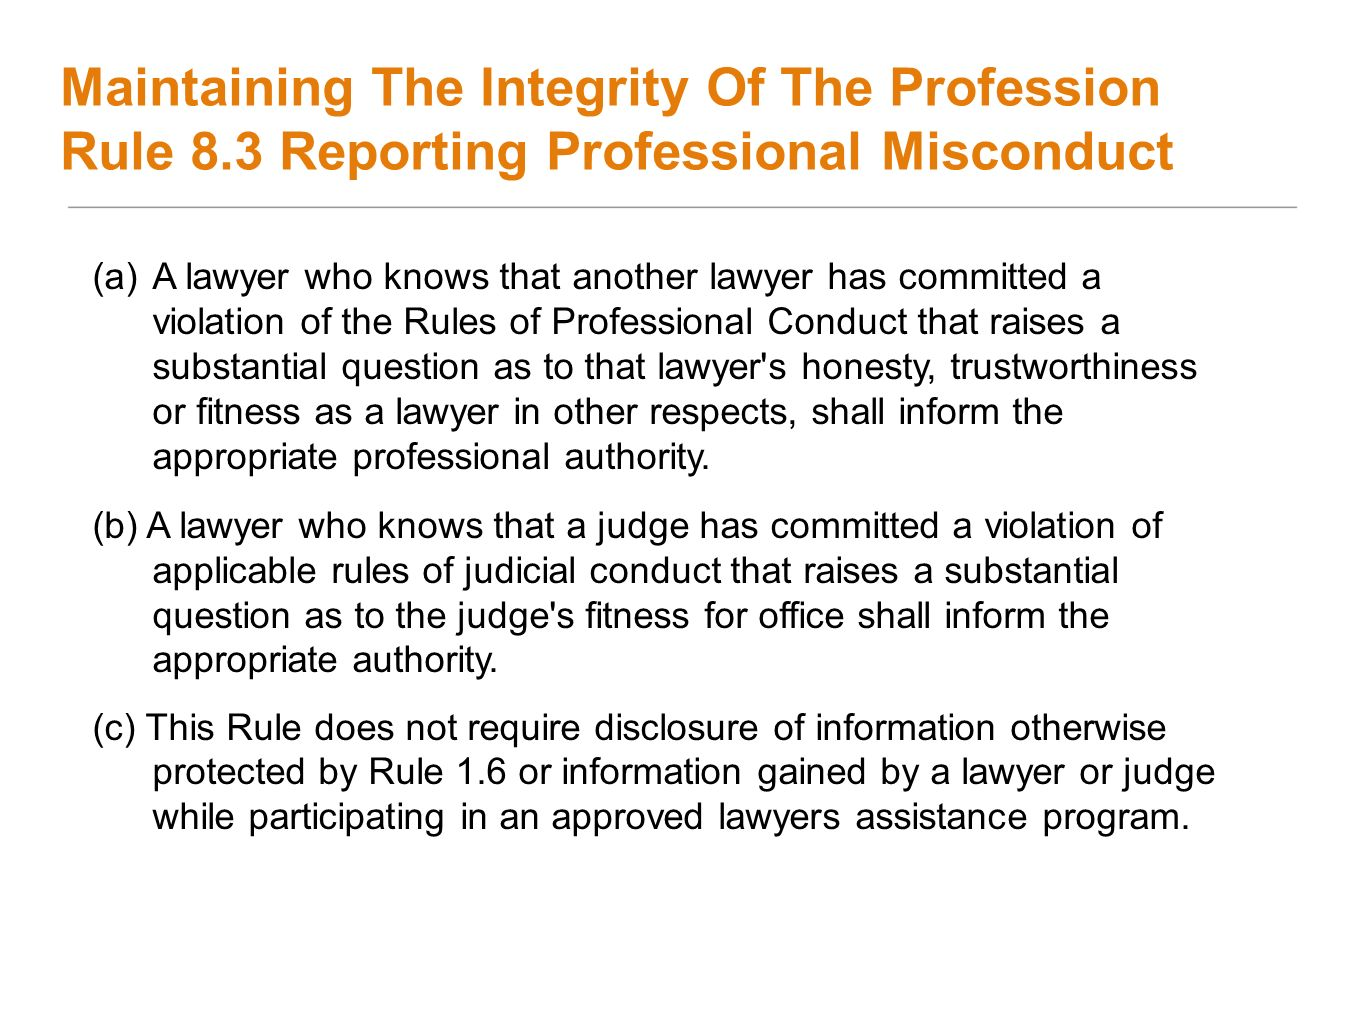 Maintaining The Integrity Of The Profession Rule 8.3 Reporting Professional Misconduct (a)A lawyer who knows that another lawyer has committed a viola